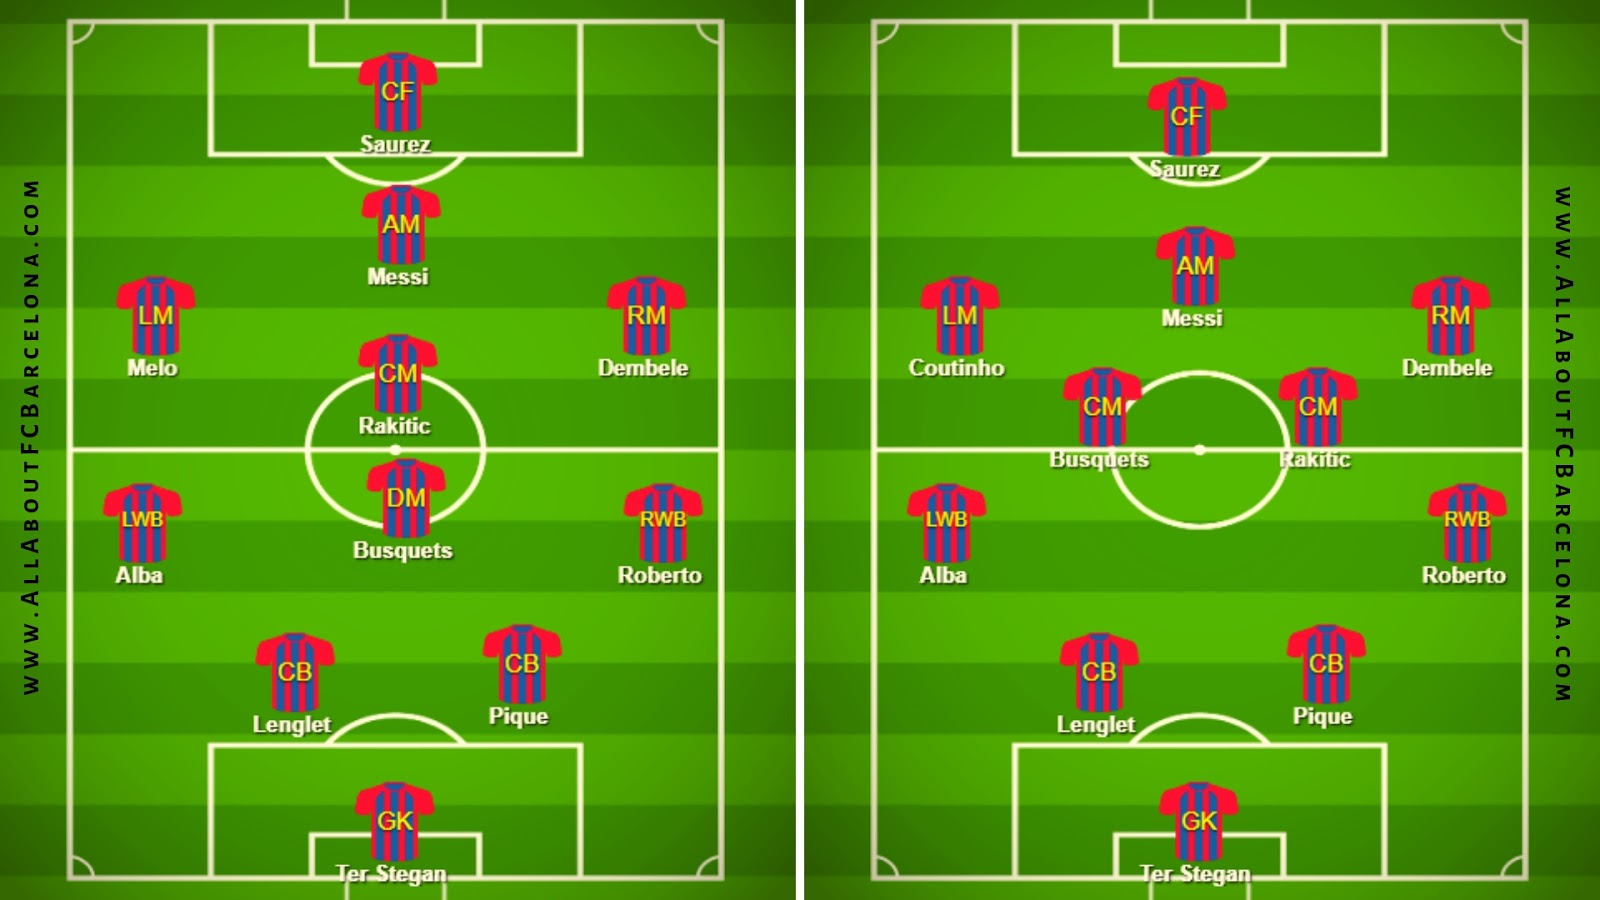 Messi in the center will bring both wings in to play, all the time